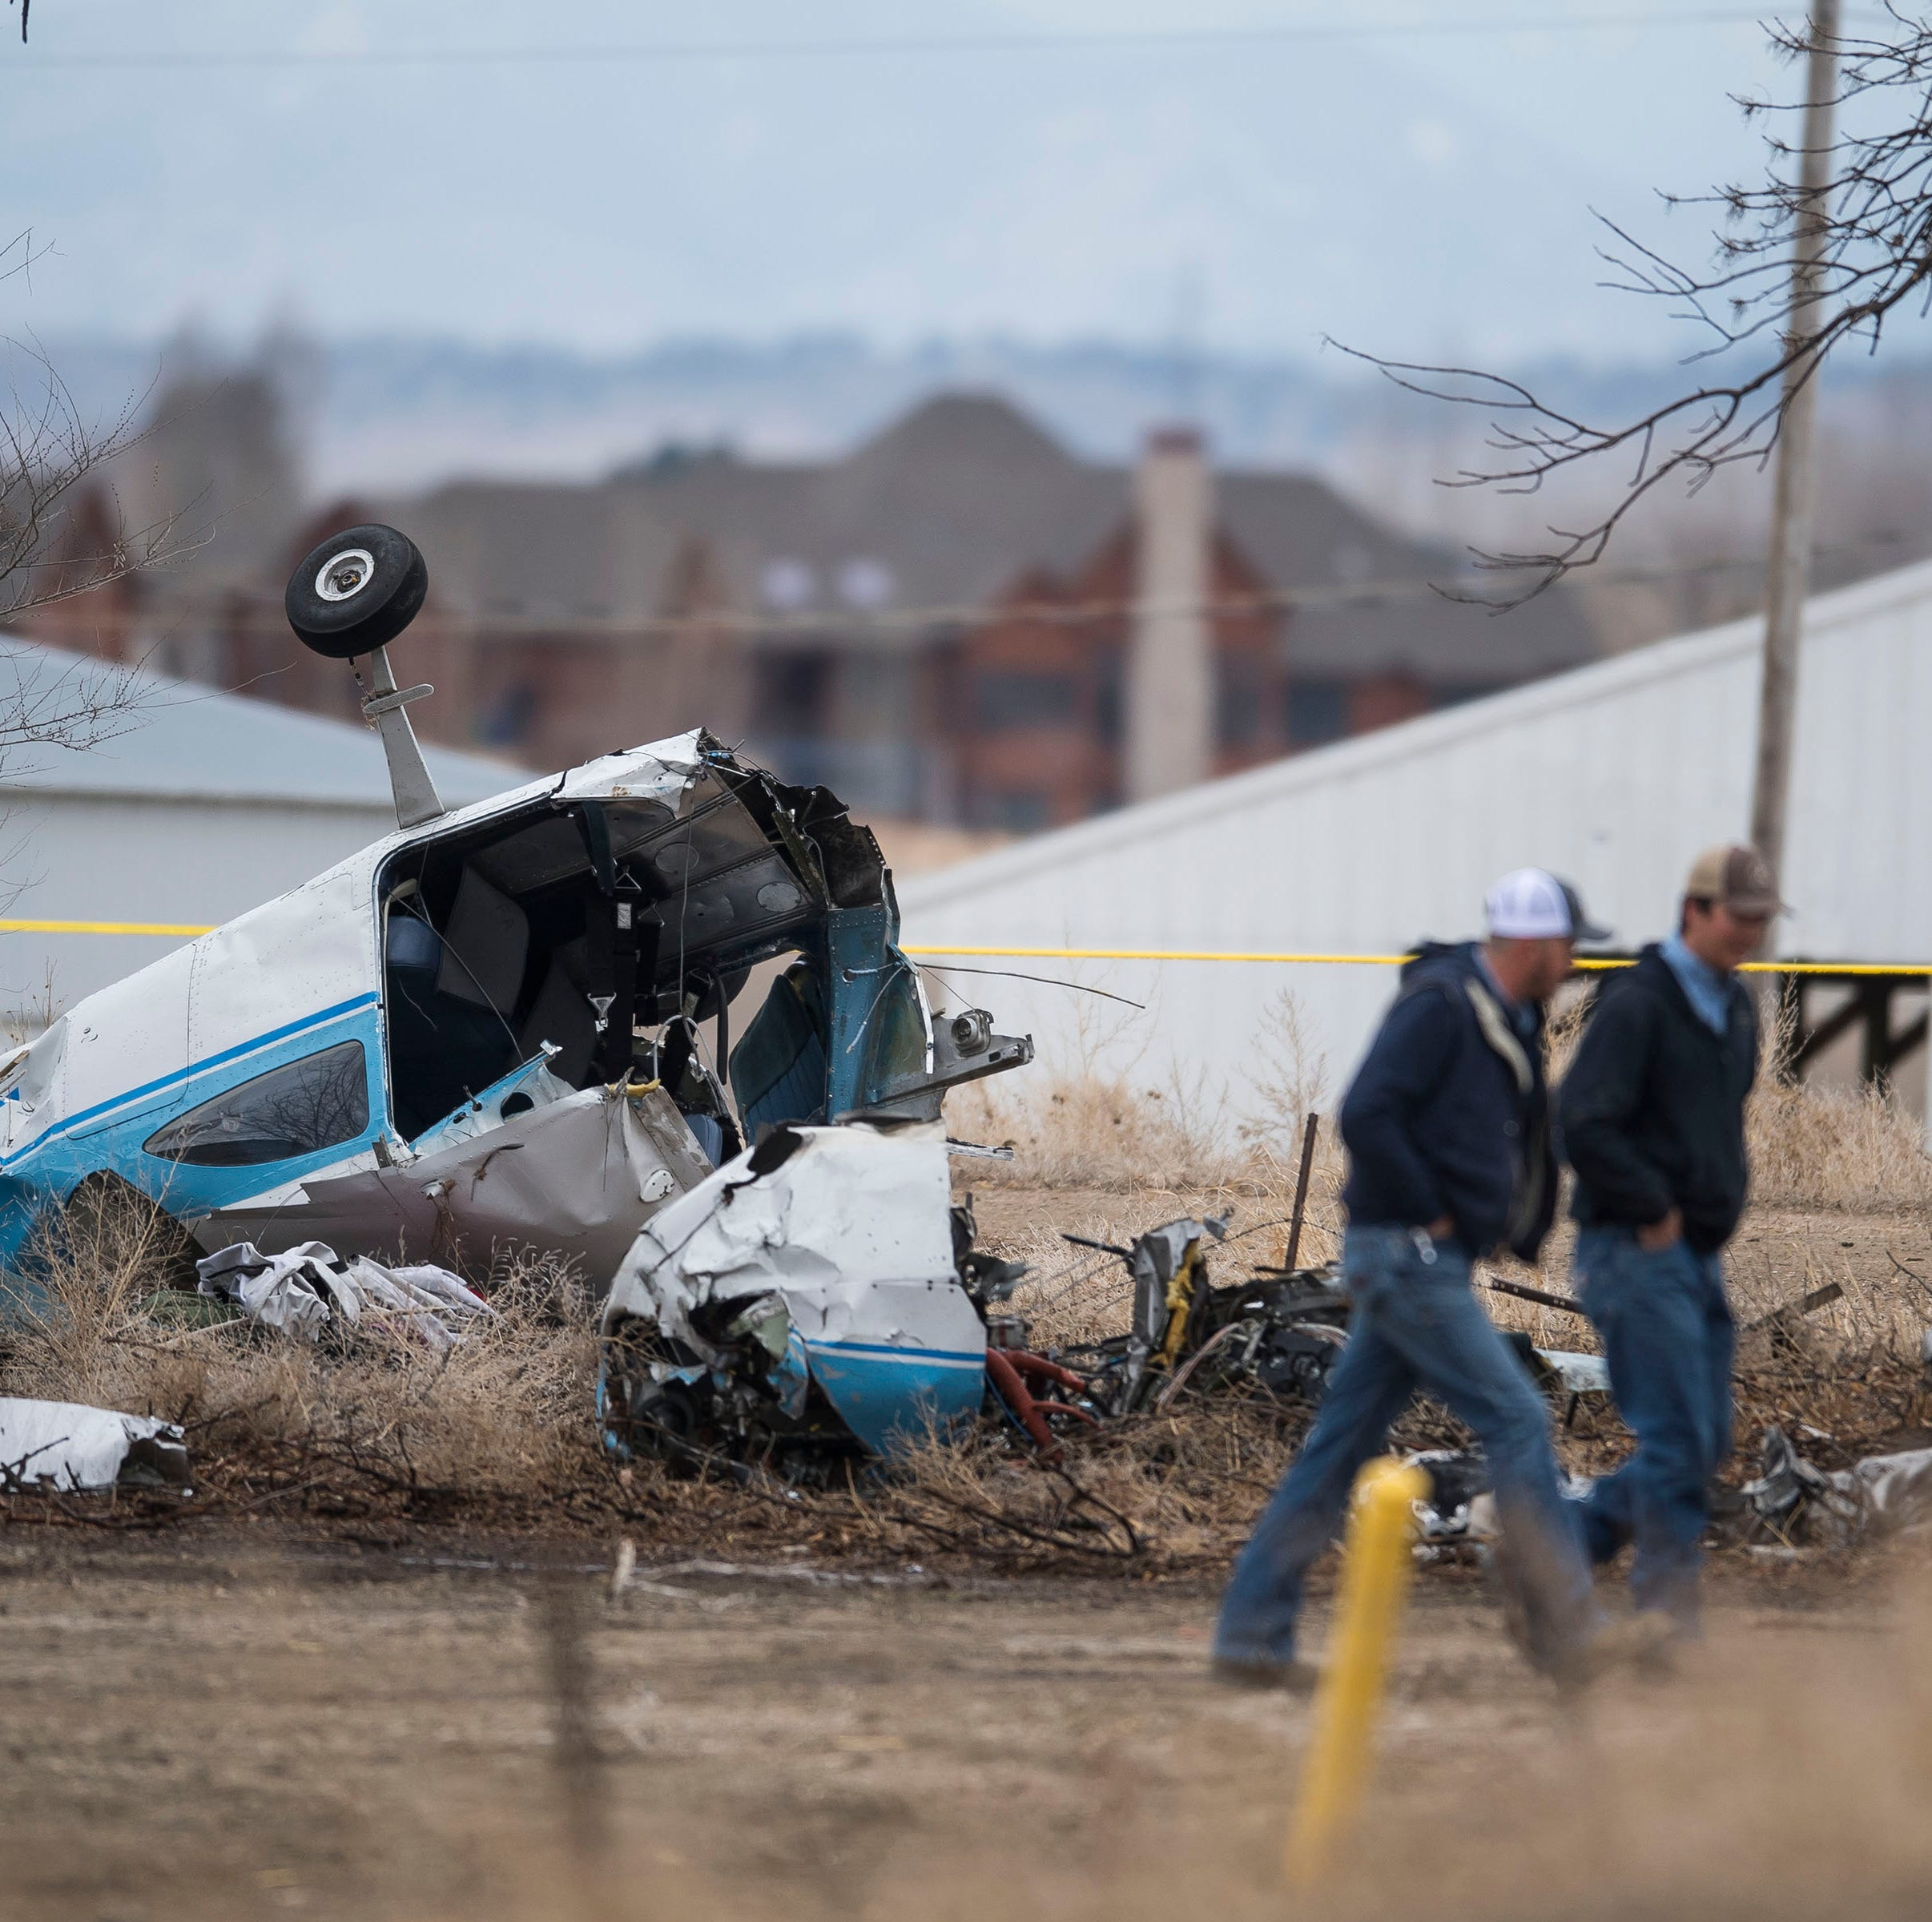 3 injured in Saturday morning plane crash west of Northern Colorado Regional Airport